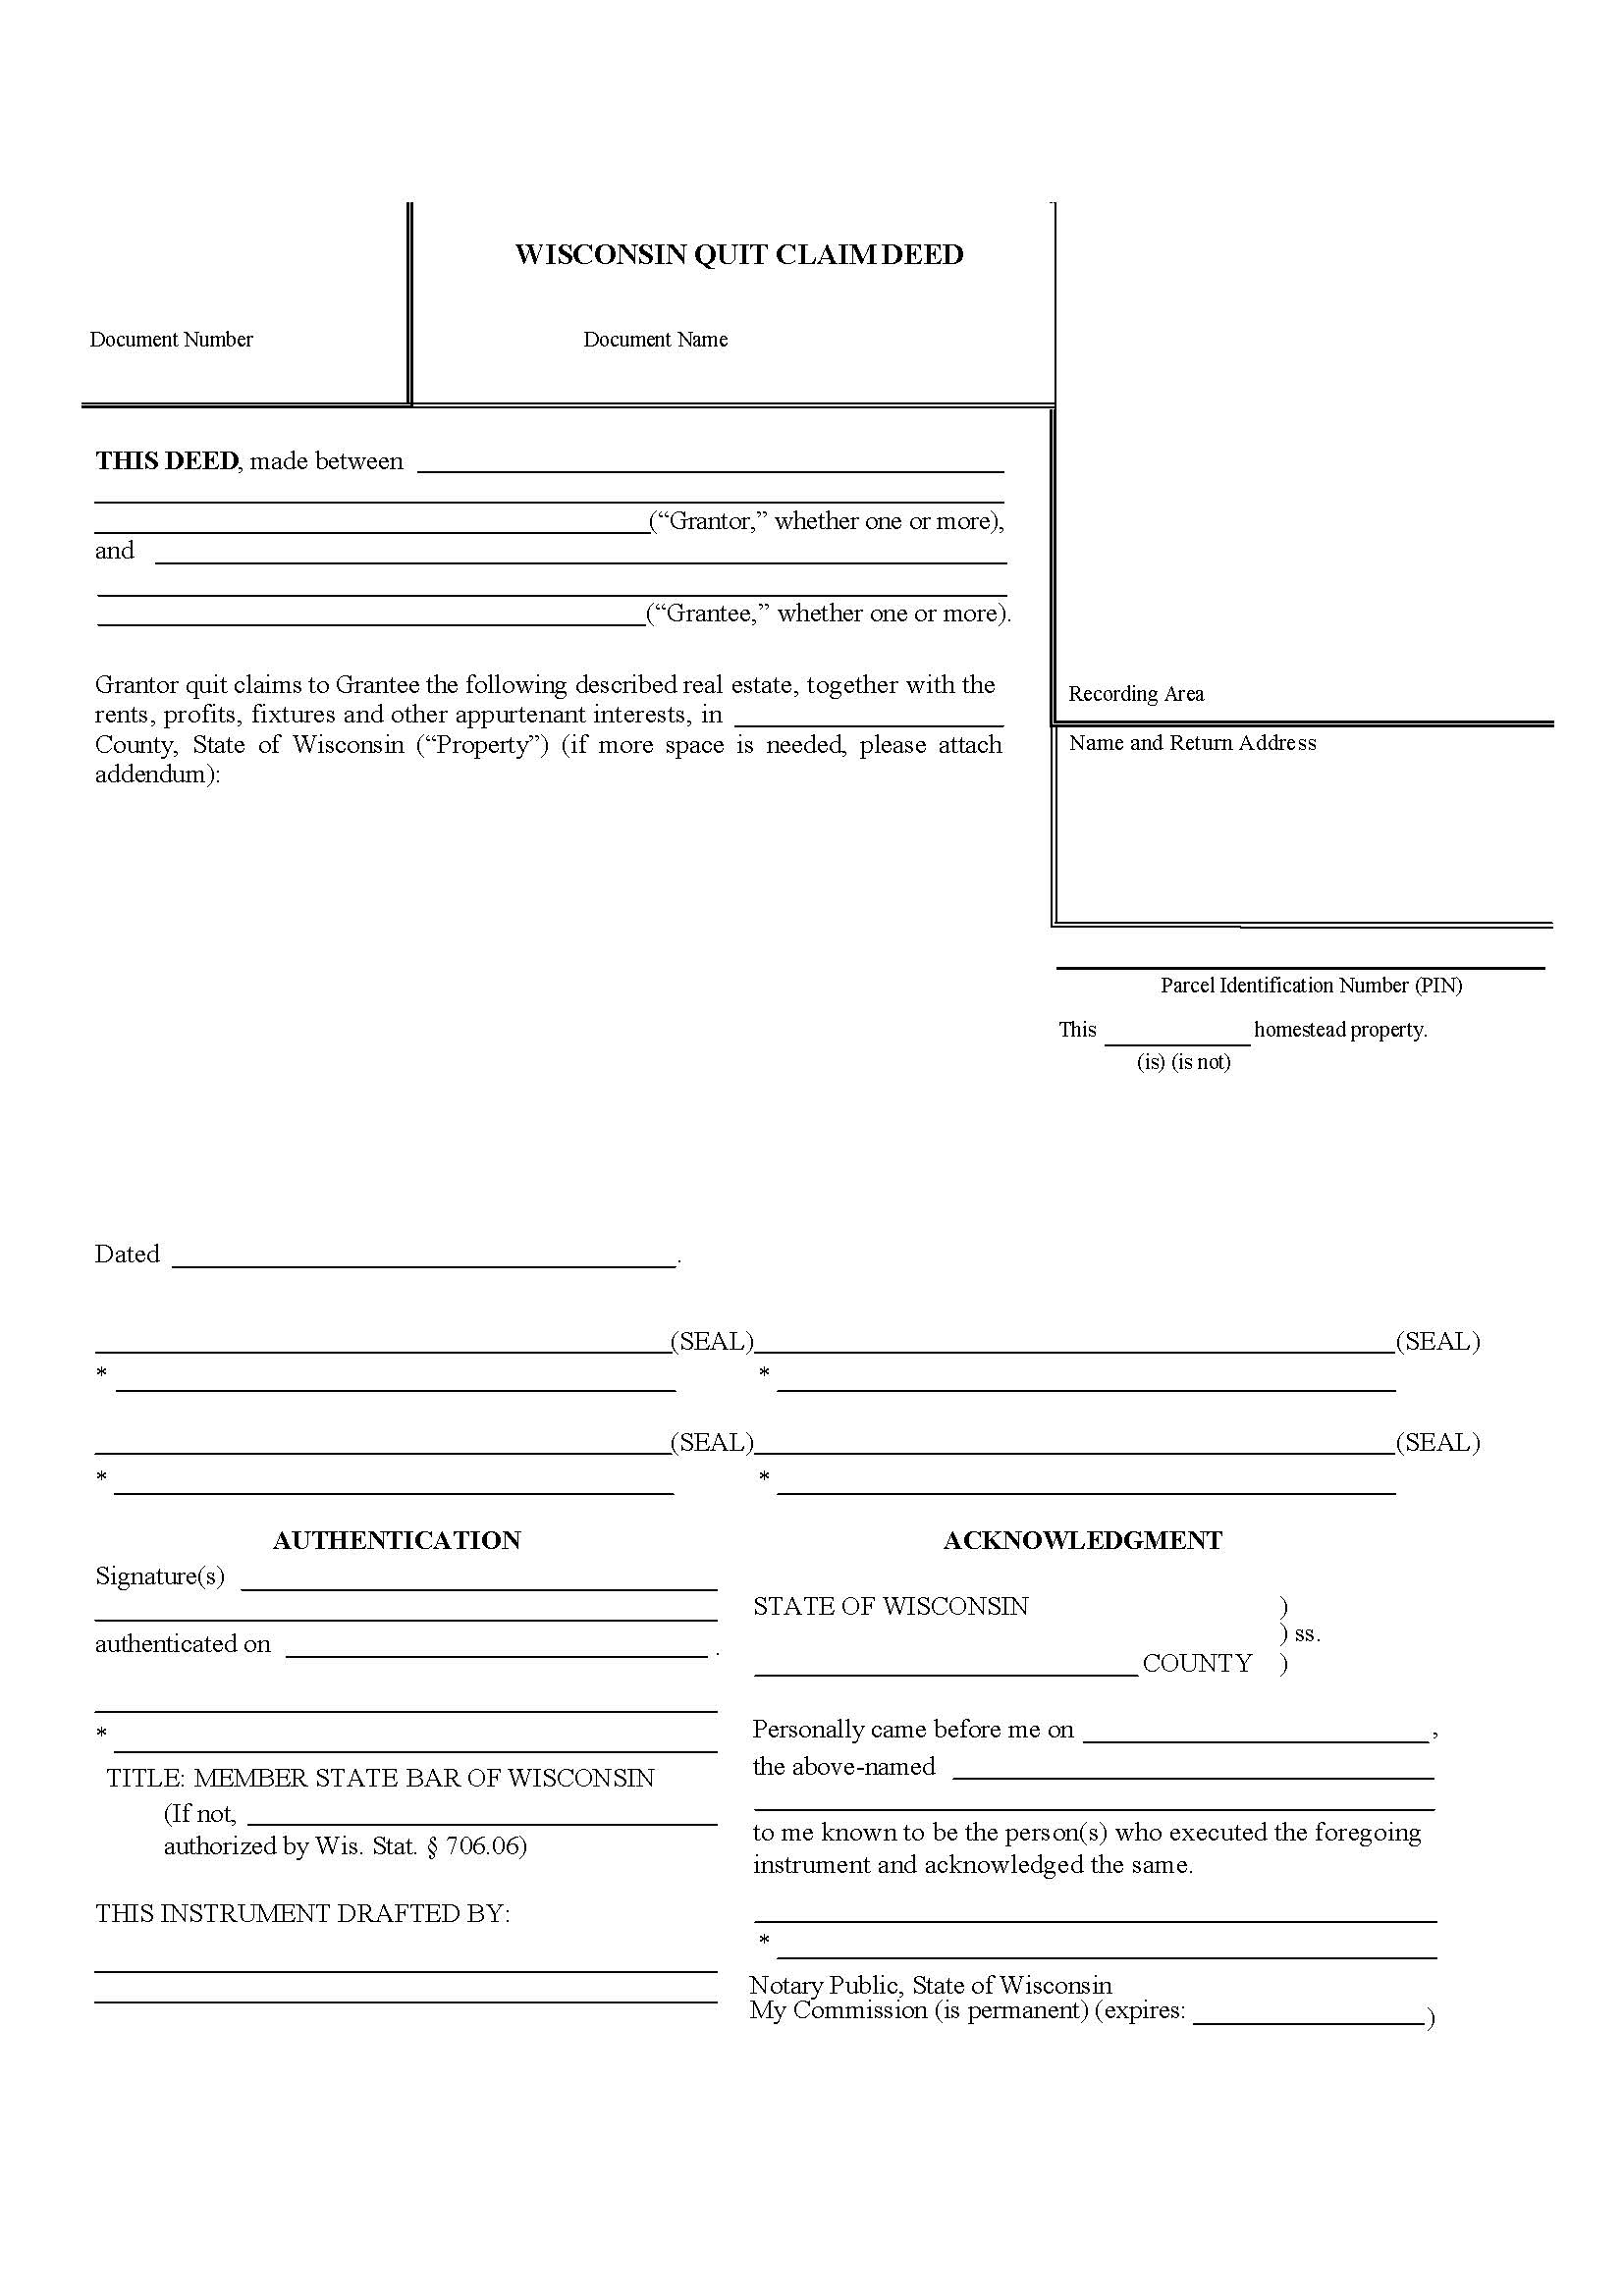 Wisconsin Quit Claim Deed Form - Deed Forms : Deed Forms